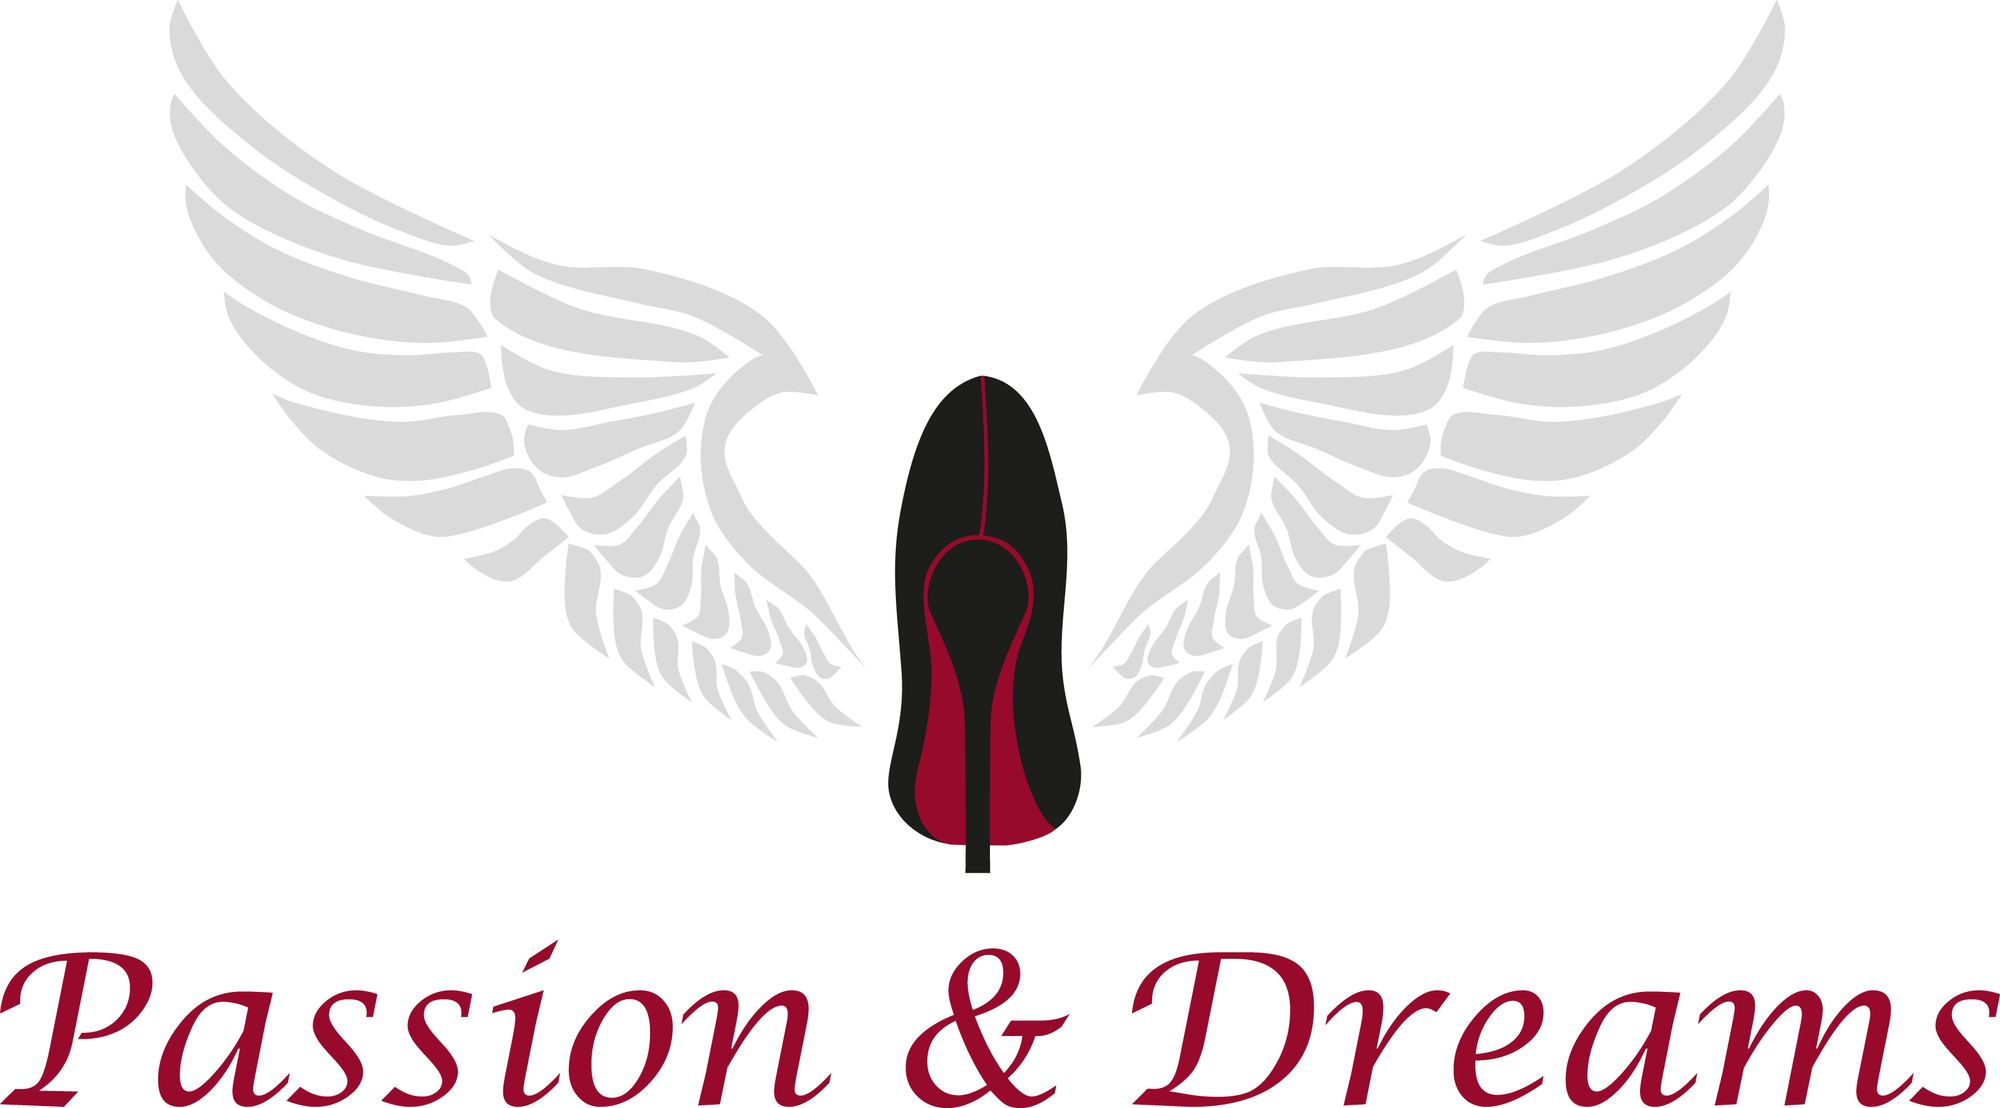 Passion & Dreams: 10% Gutschein ab CHF 50.-